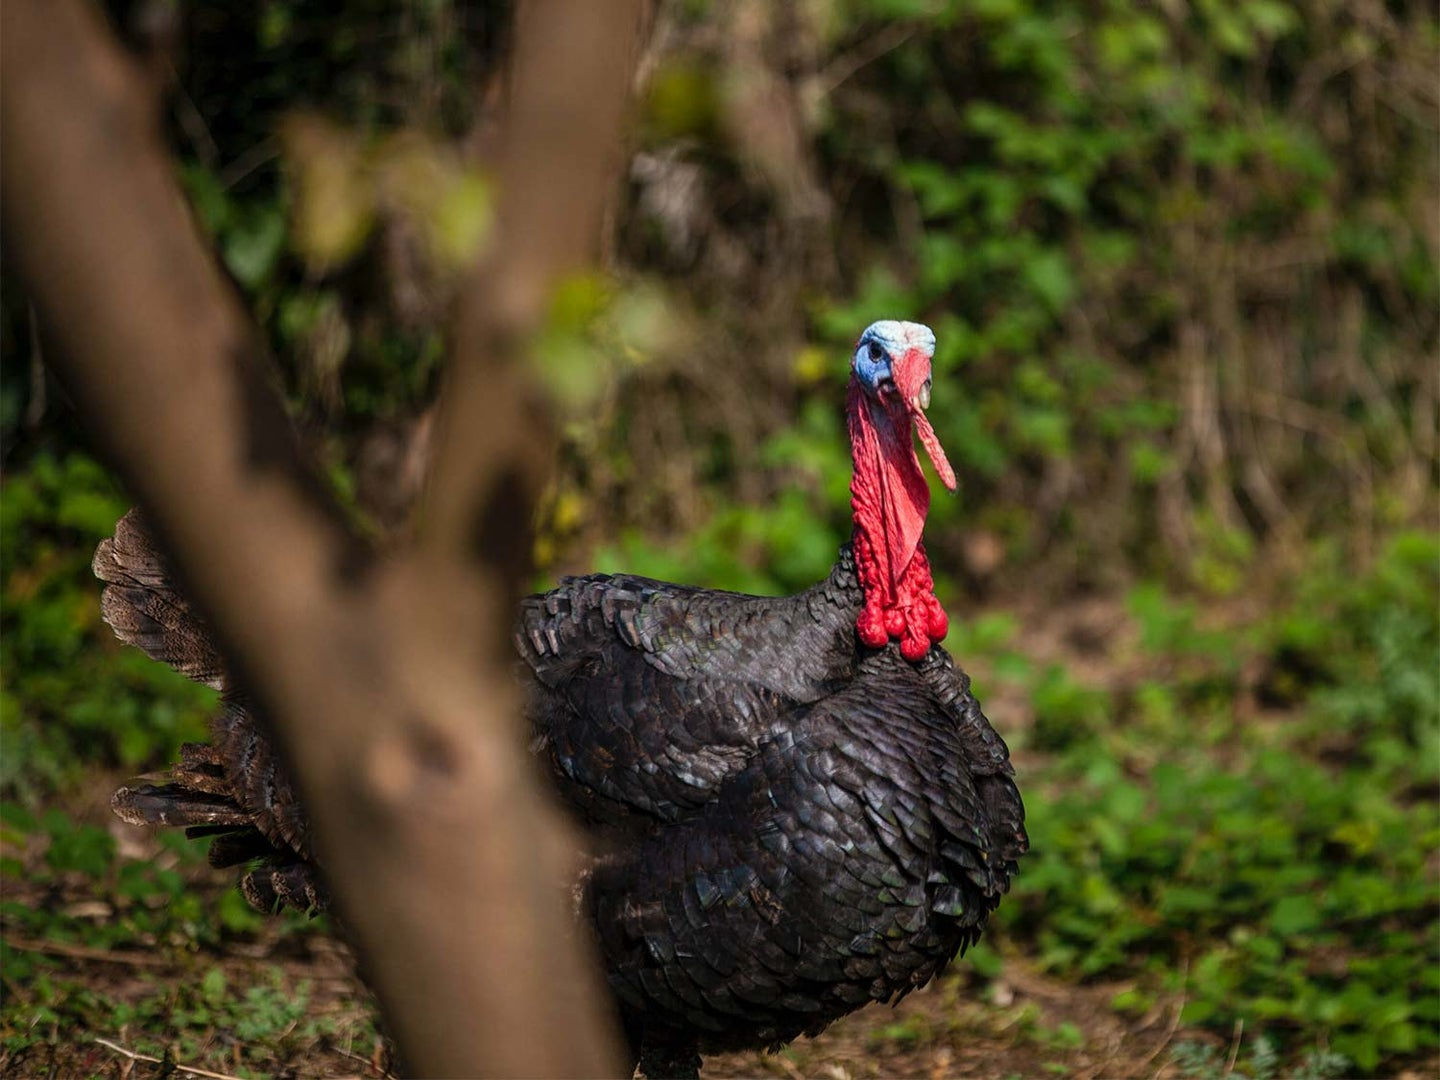 A turkey walks through a clearing in the forest.